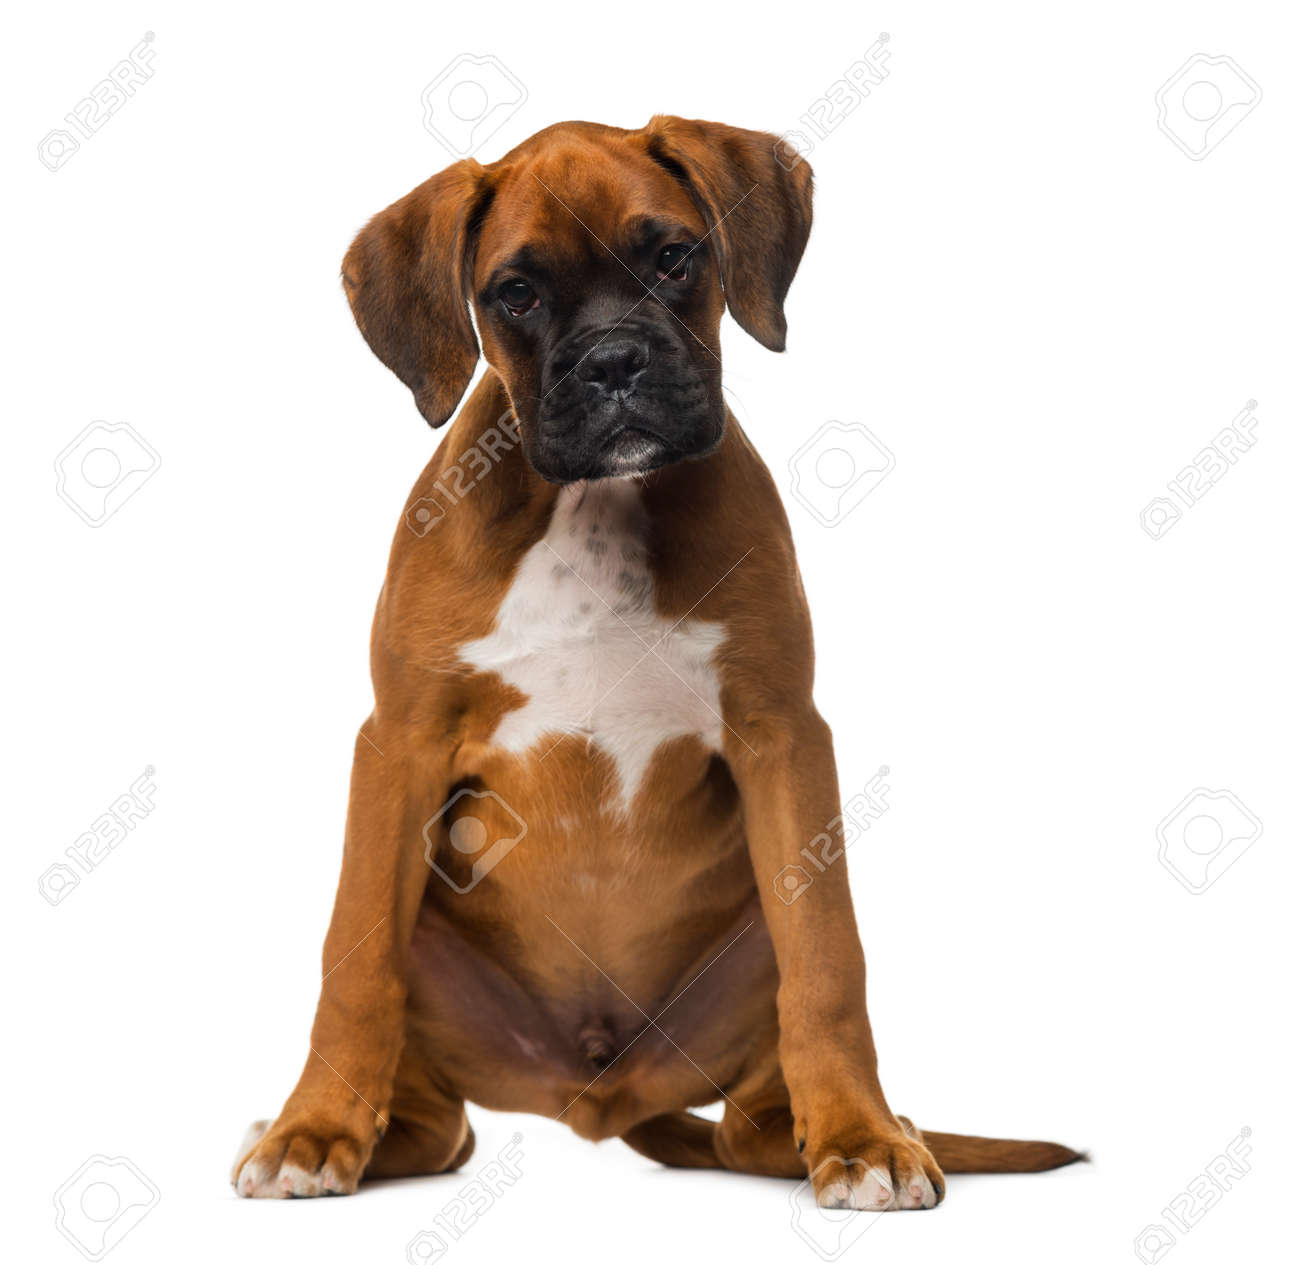 boxer puppy 3 months old stock photo picture and royalty free